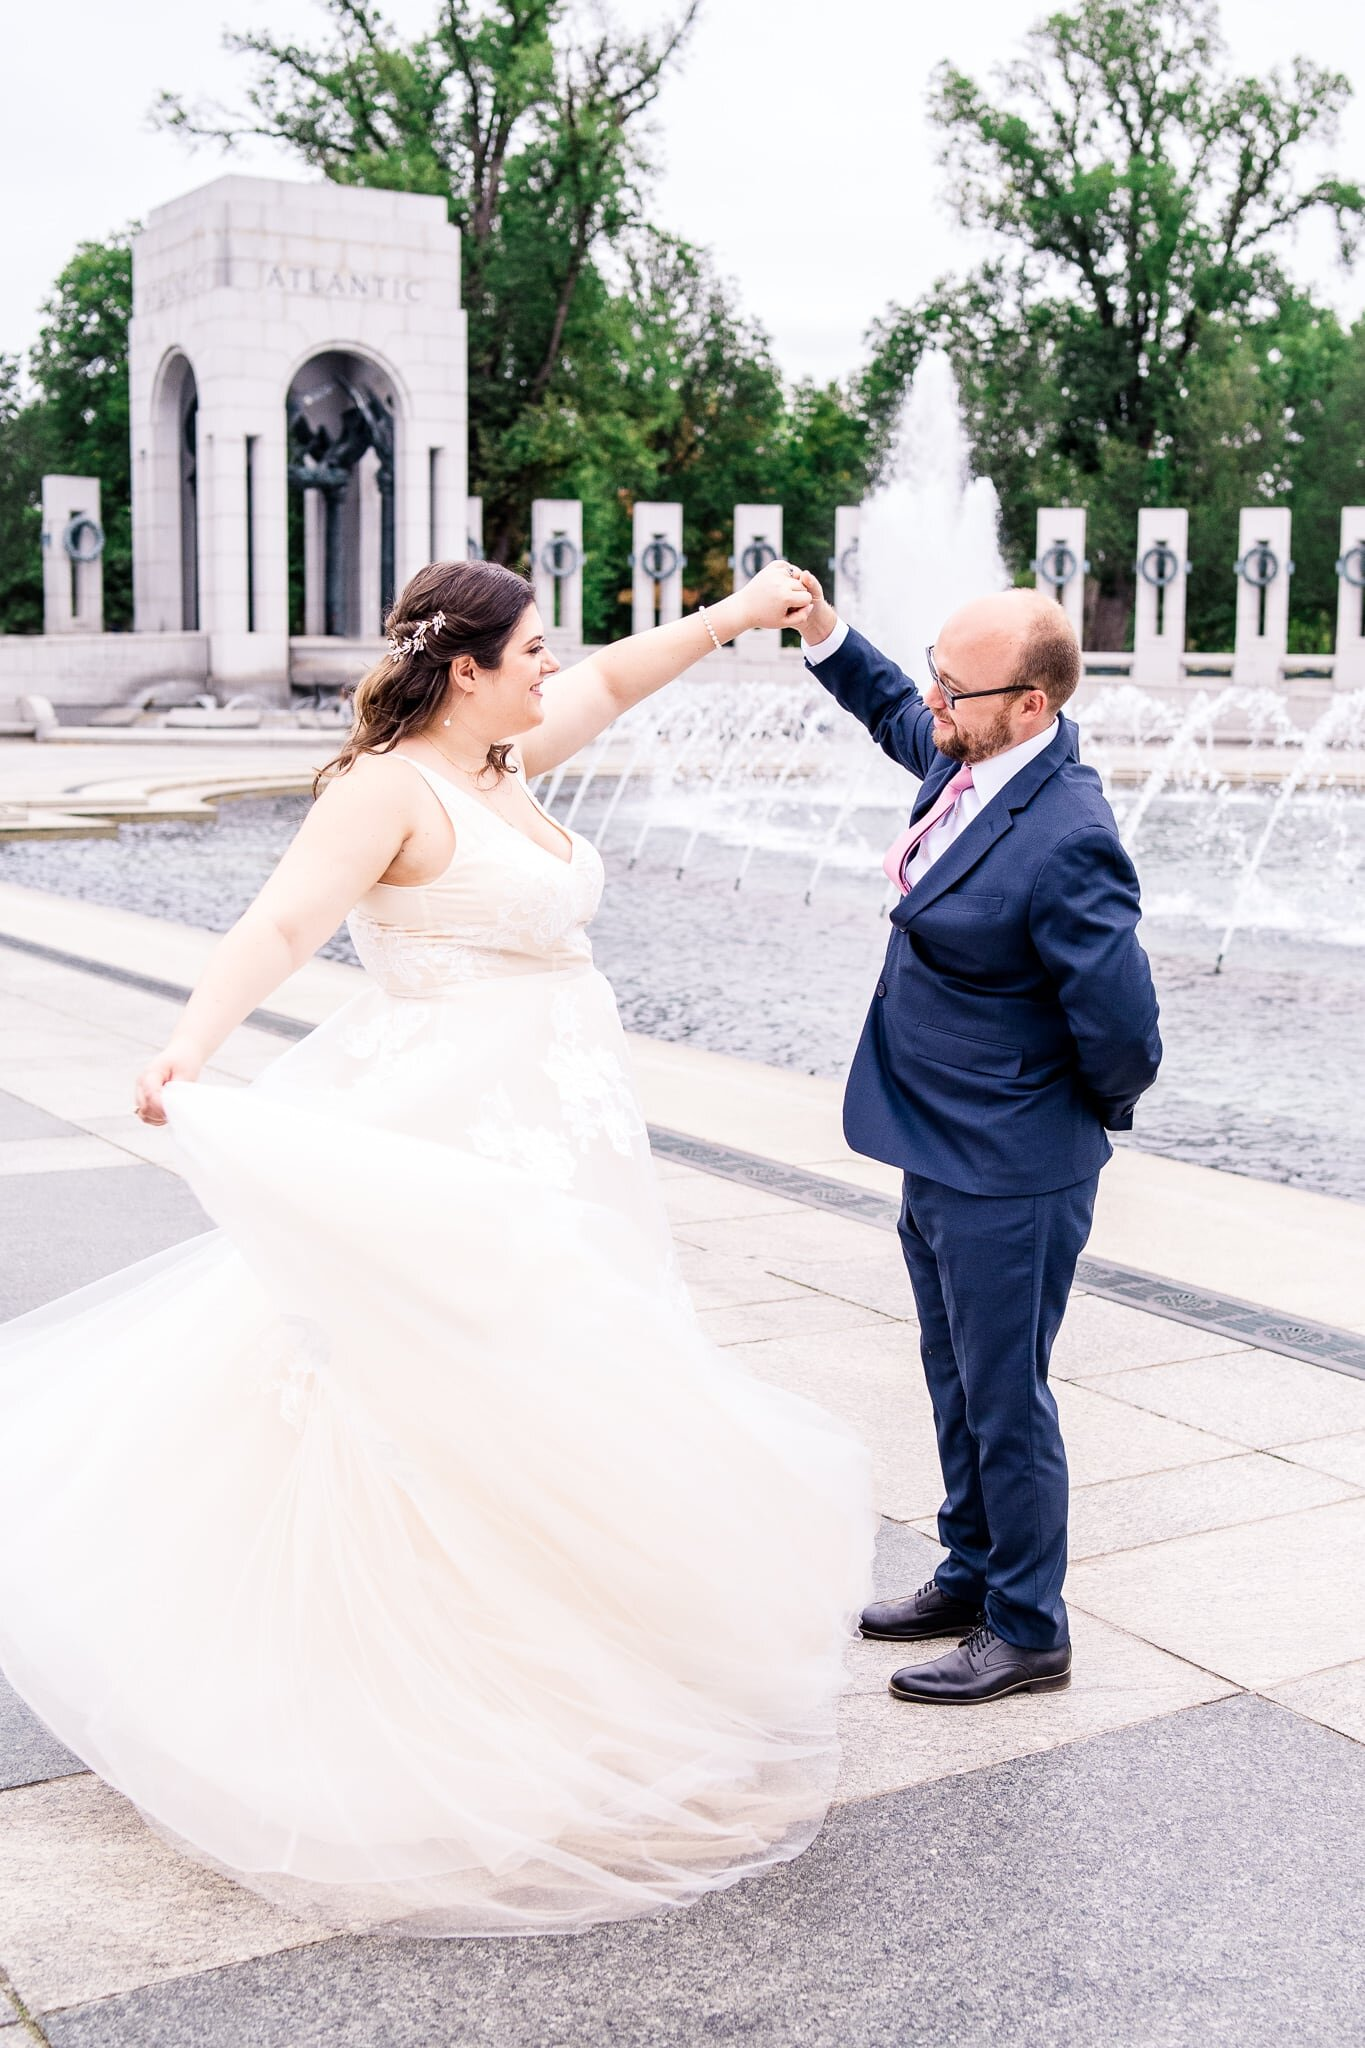 A groom twirls his bride as her tulle wedding dress swirls around her on their fall wedding day at the WWII Memorial in Washington, DC